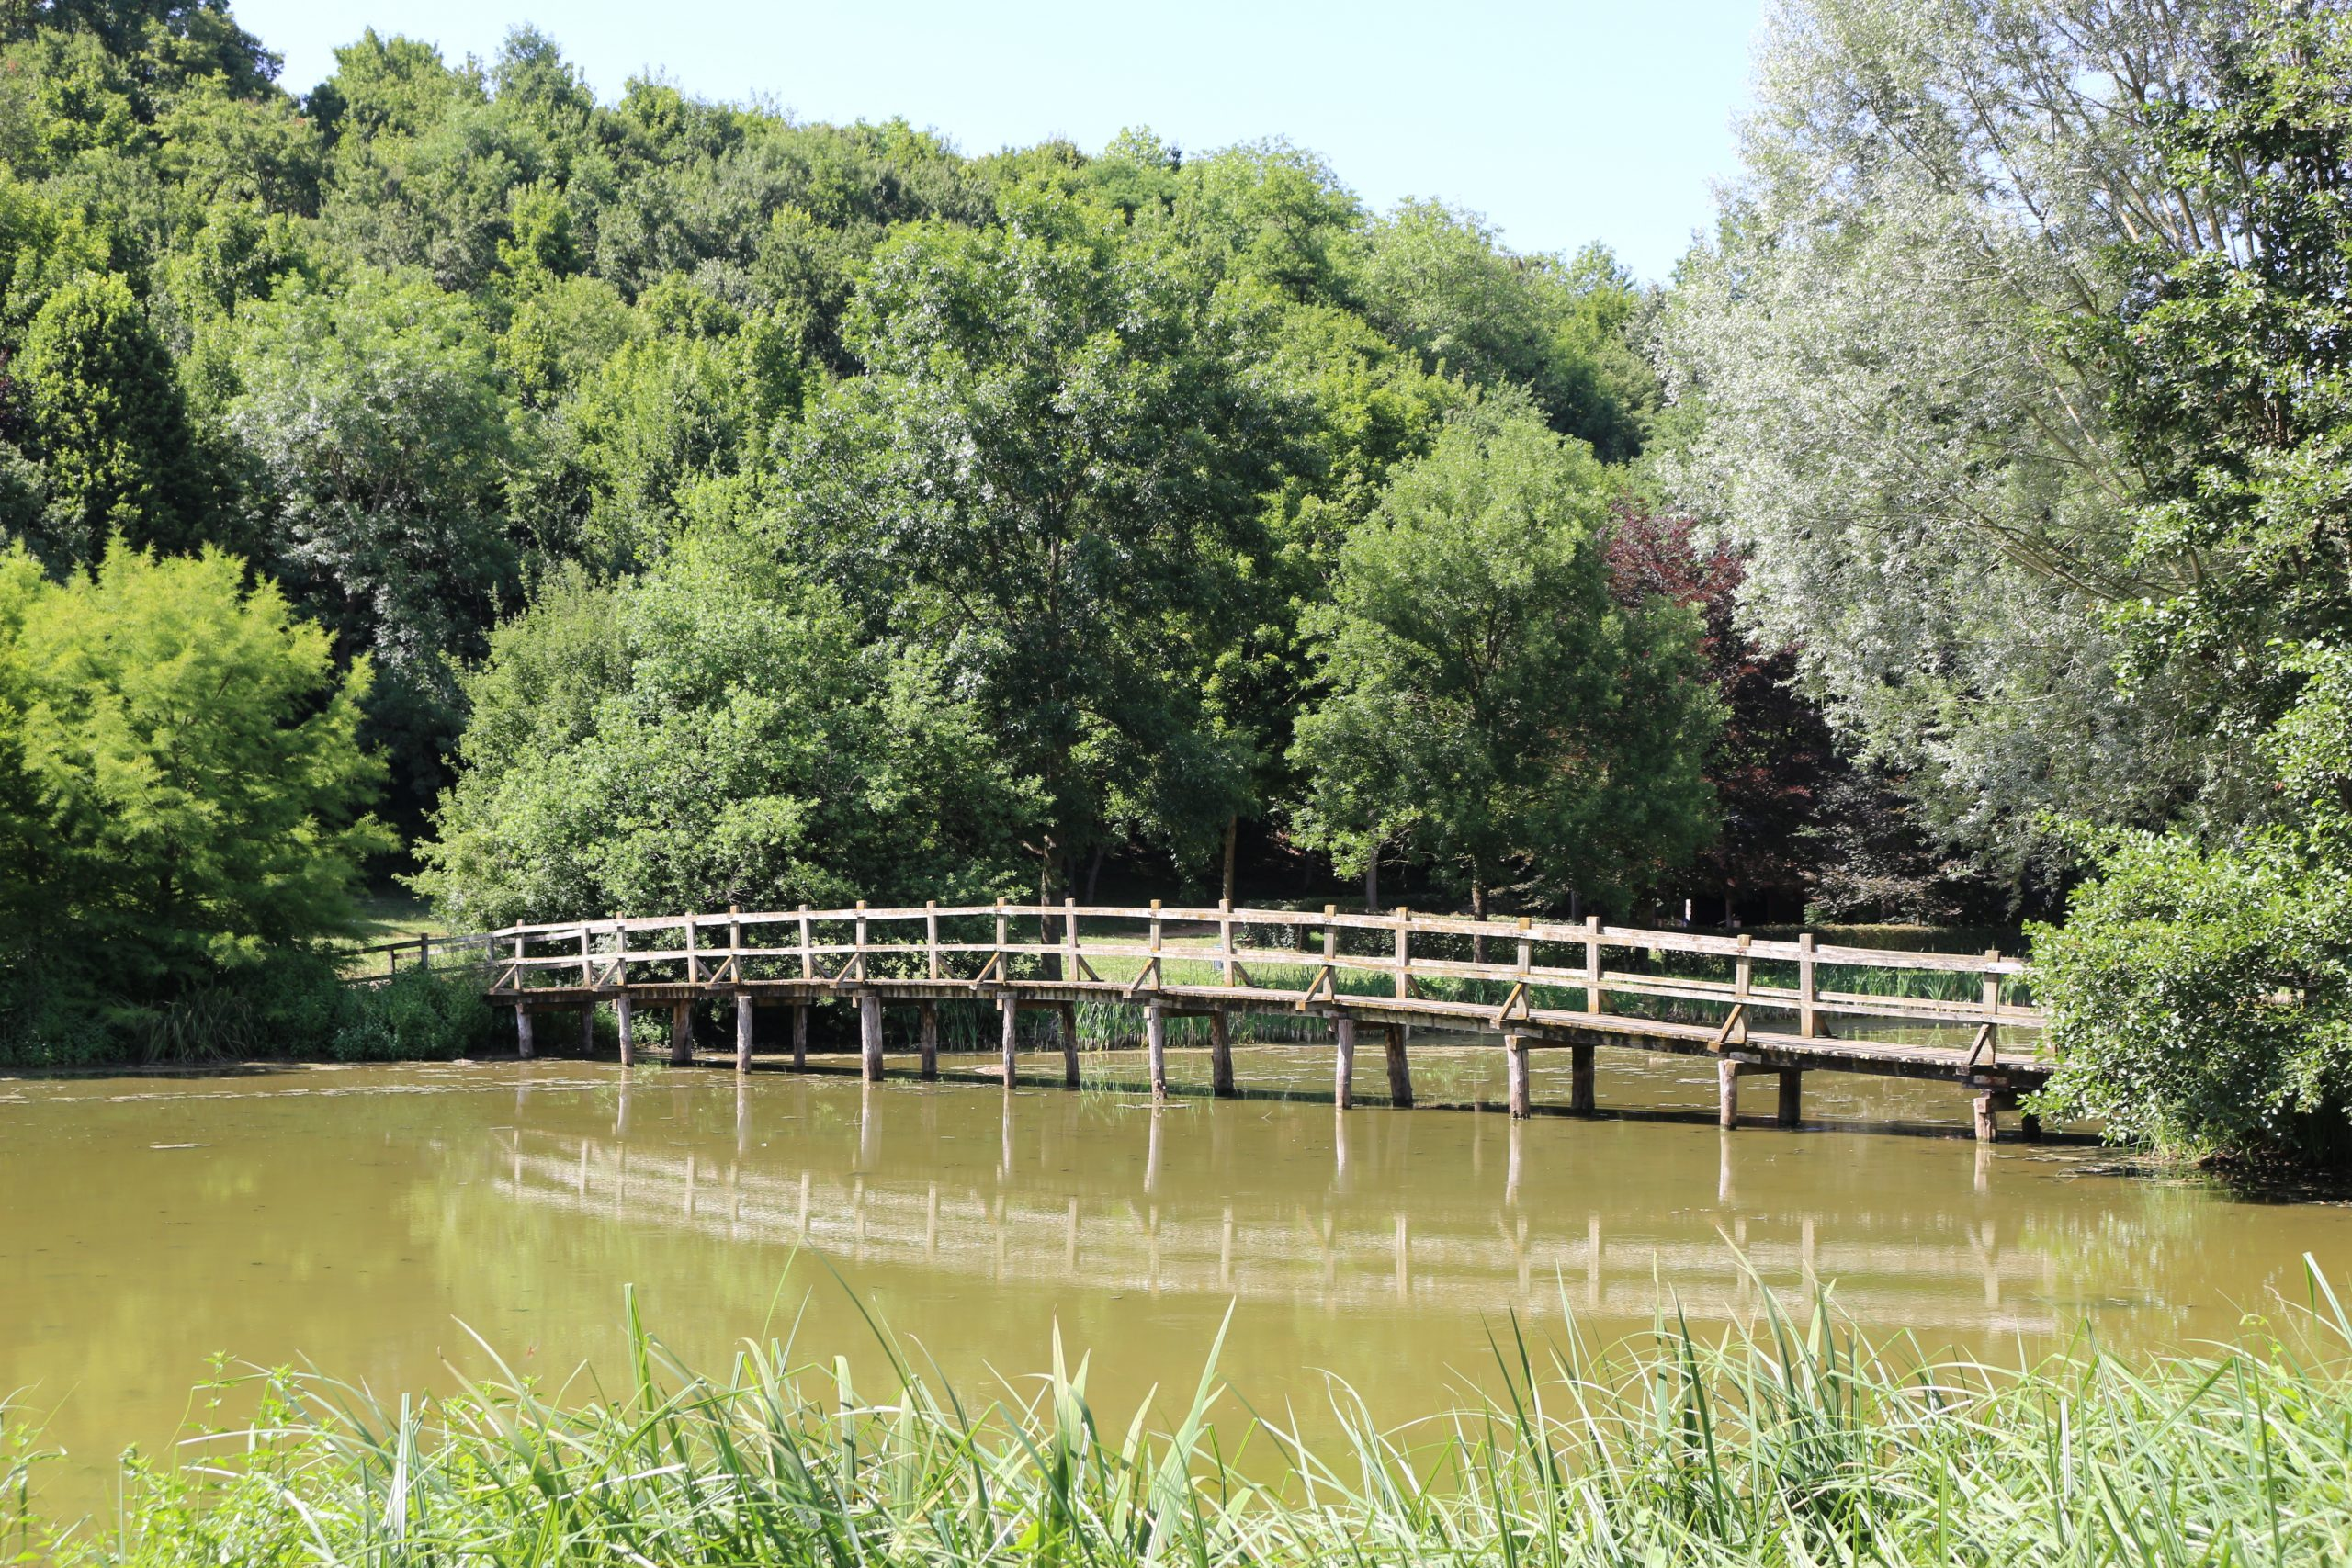 The bridge over the Source, Taize